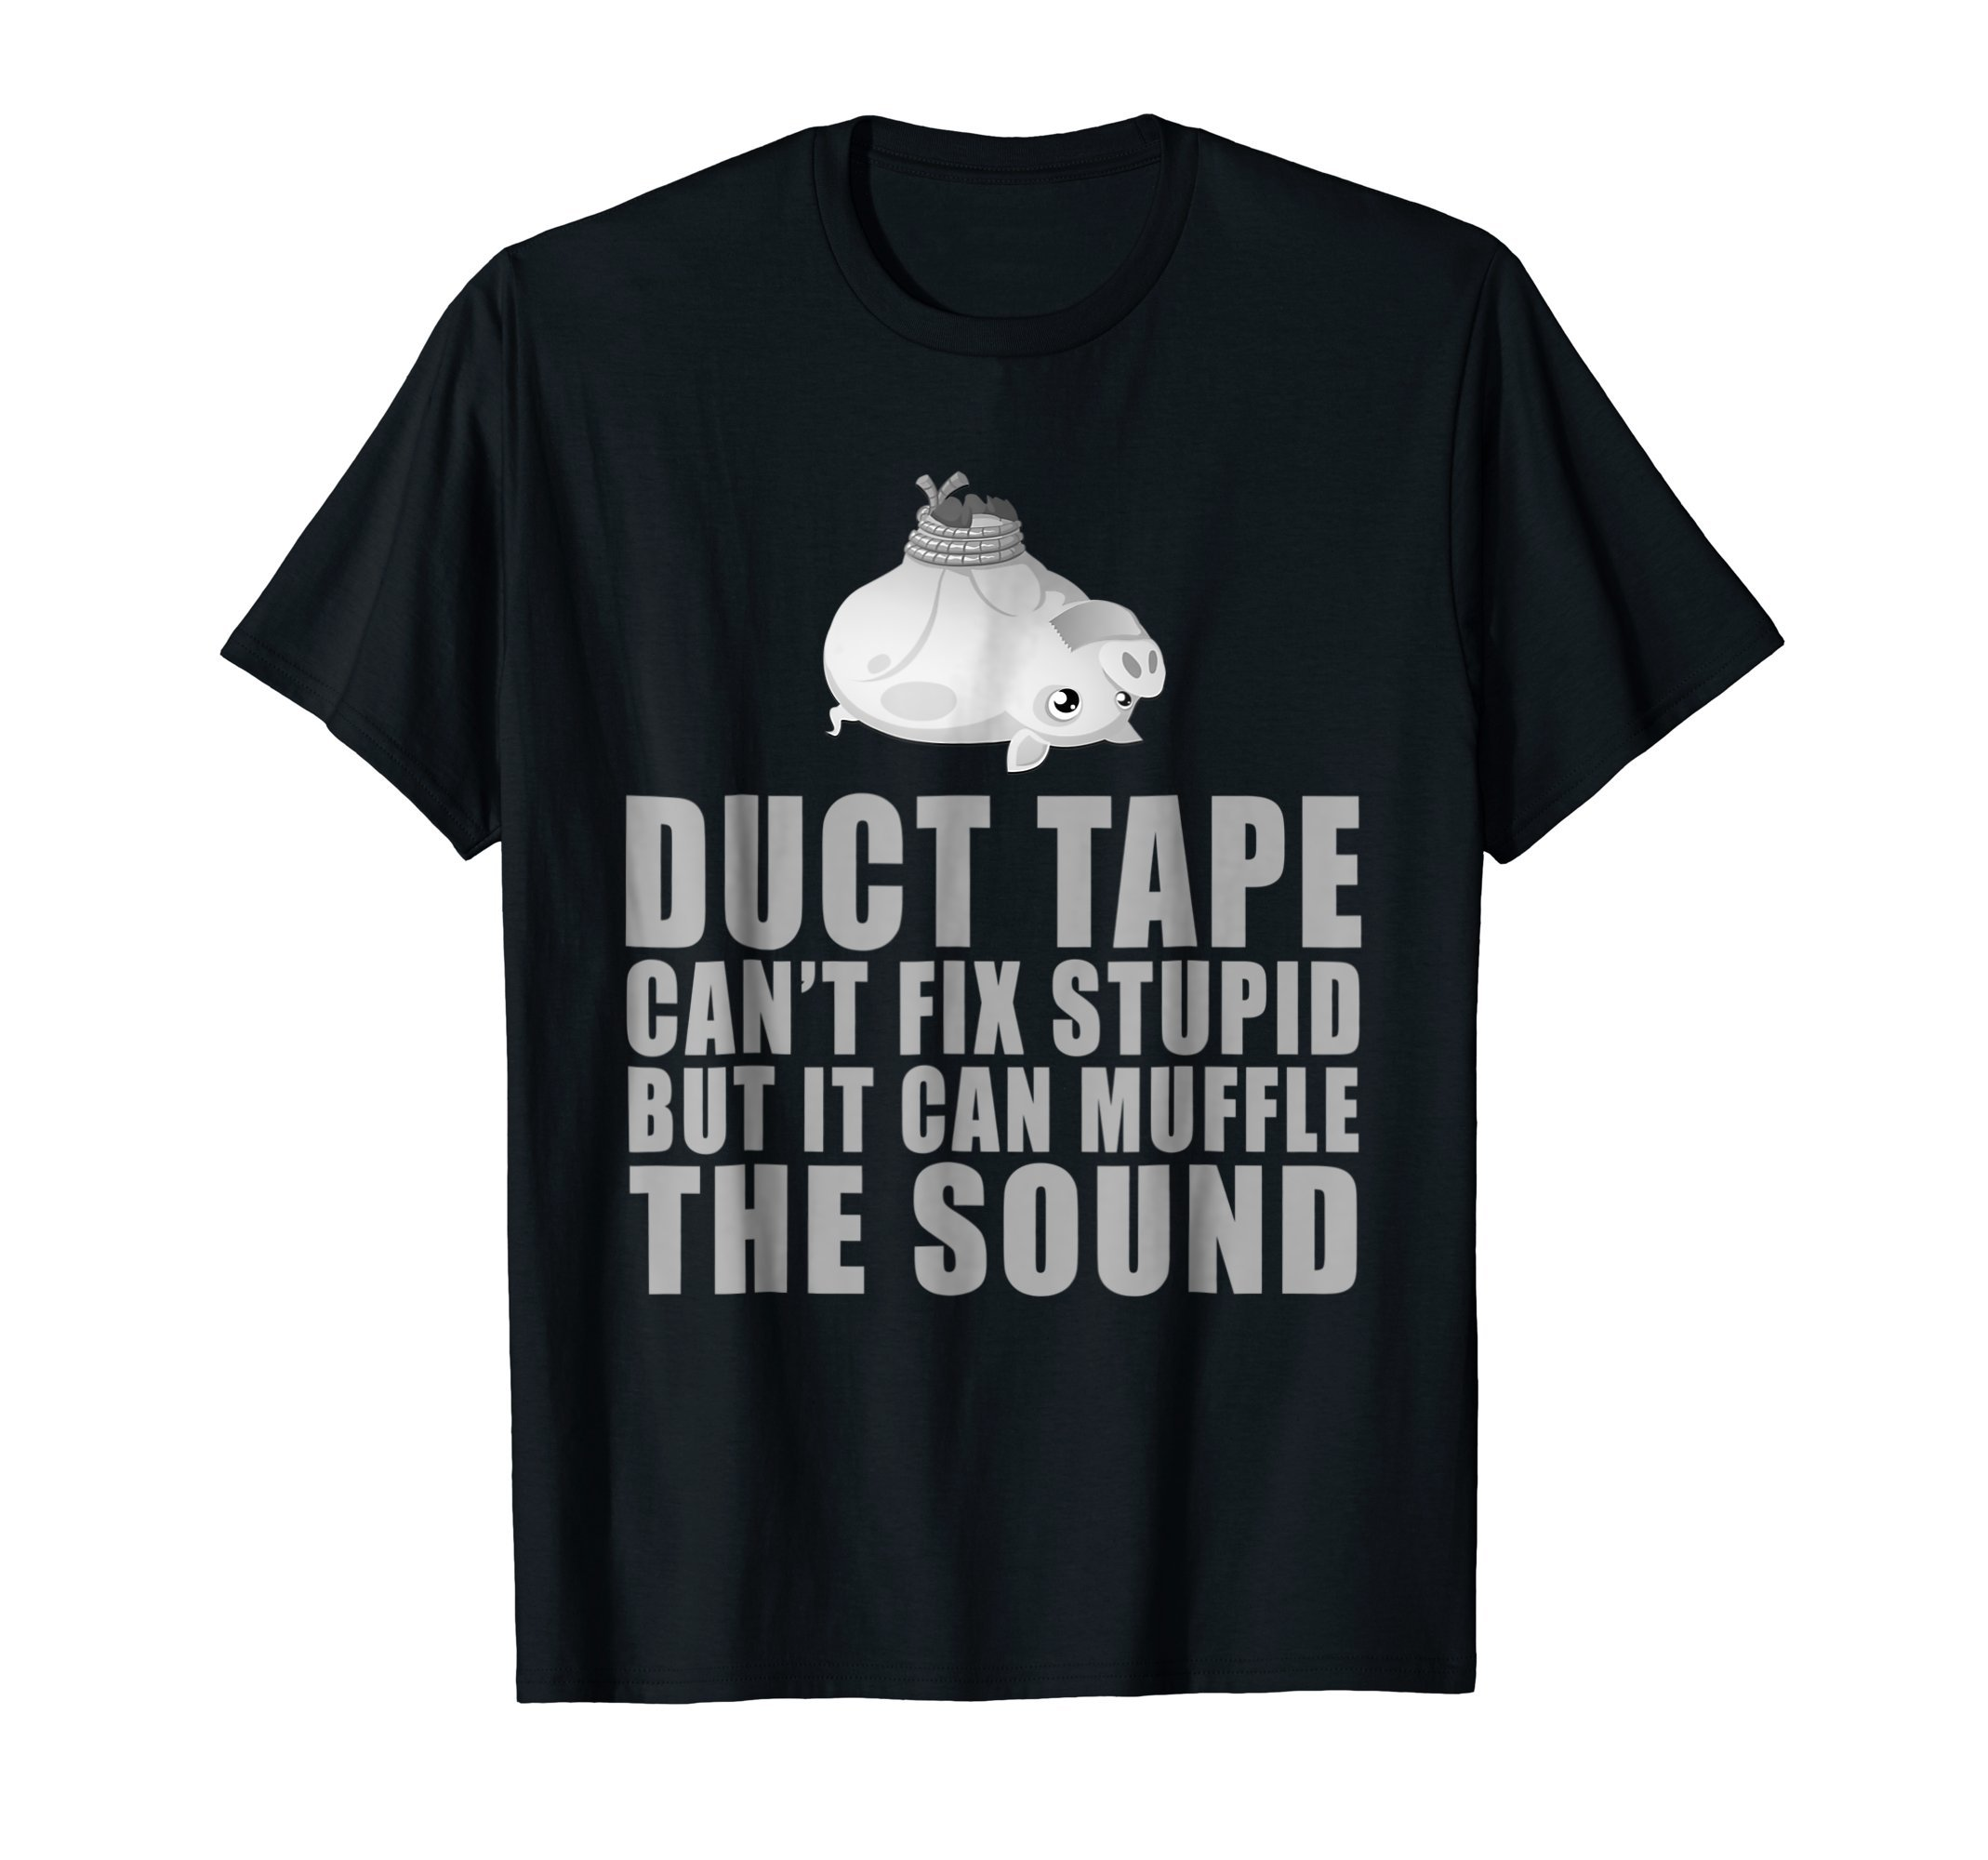 Duct Tape Can't Fix Stupid But Can Muffle The Sound T-Shirt